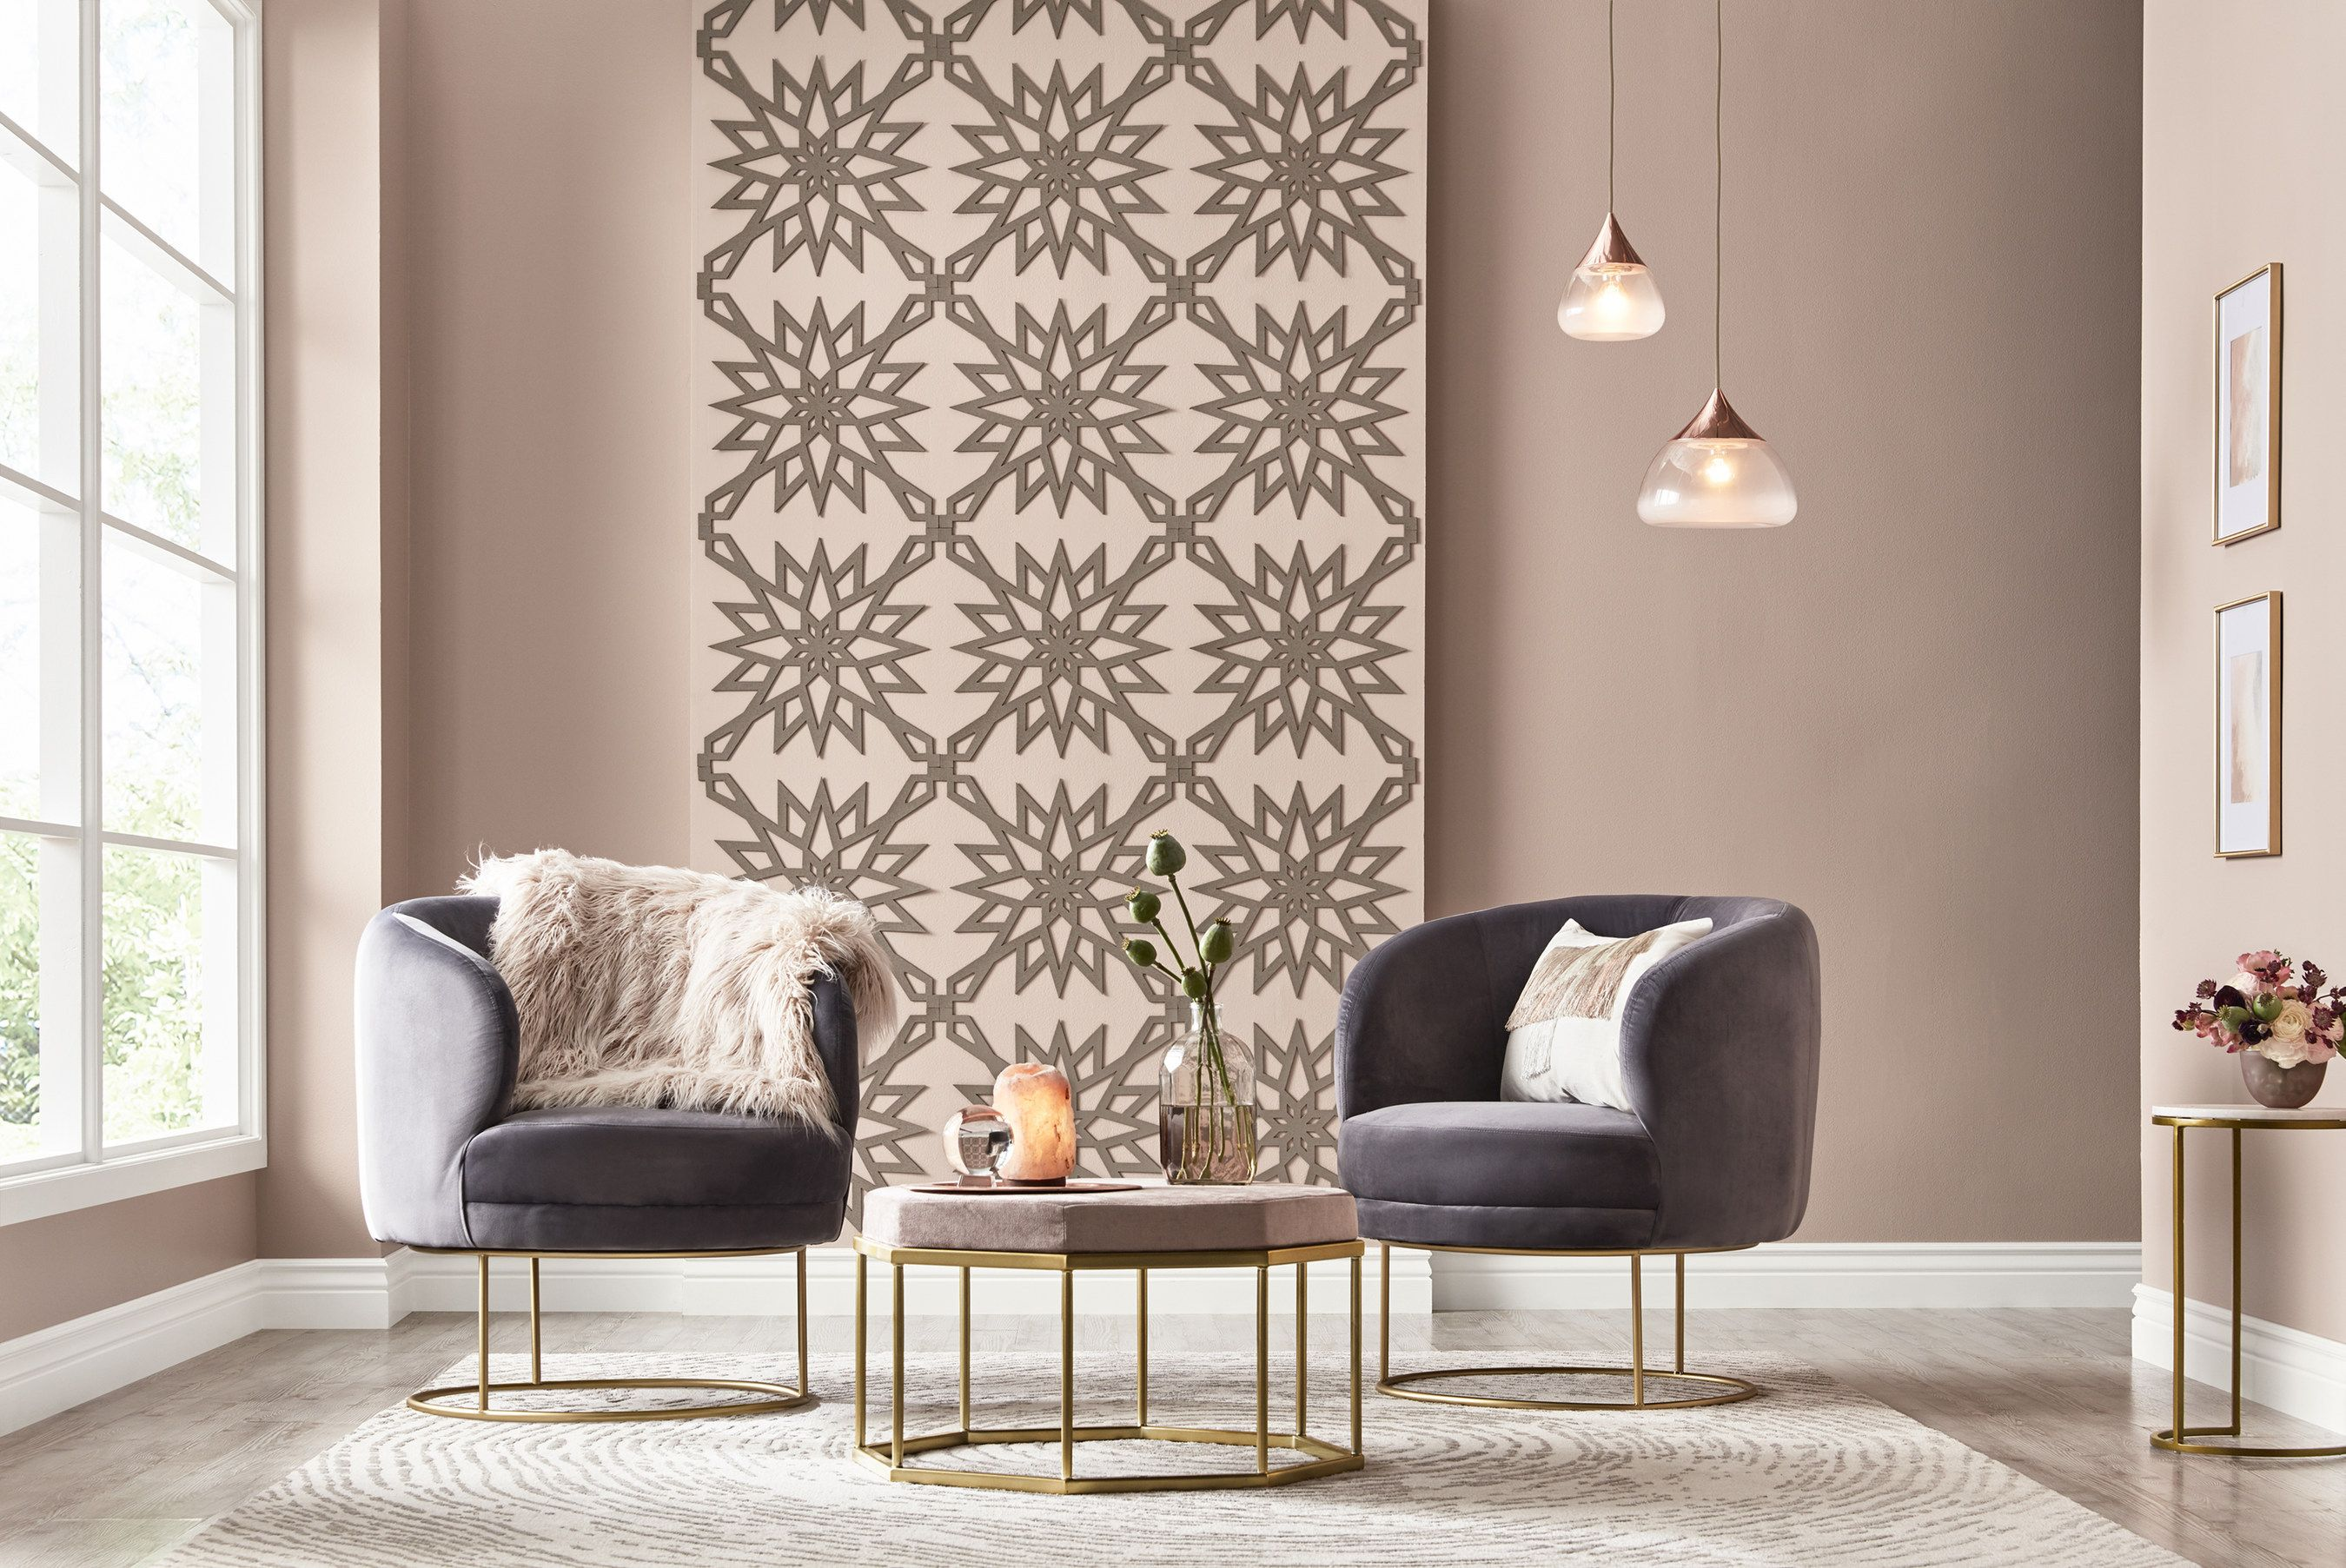 interior paints and color trends 2019 & 10 Best Interior Paint Brands 2019 - Reviews of Top Paints for ...